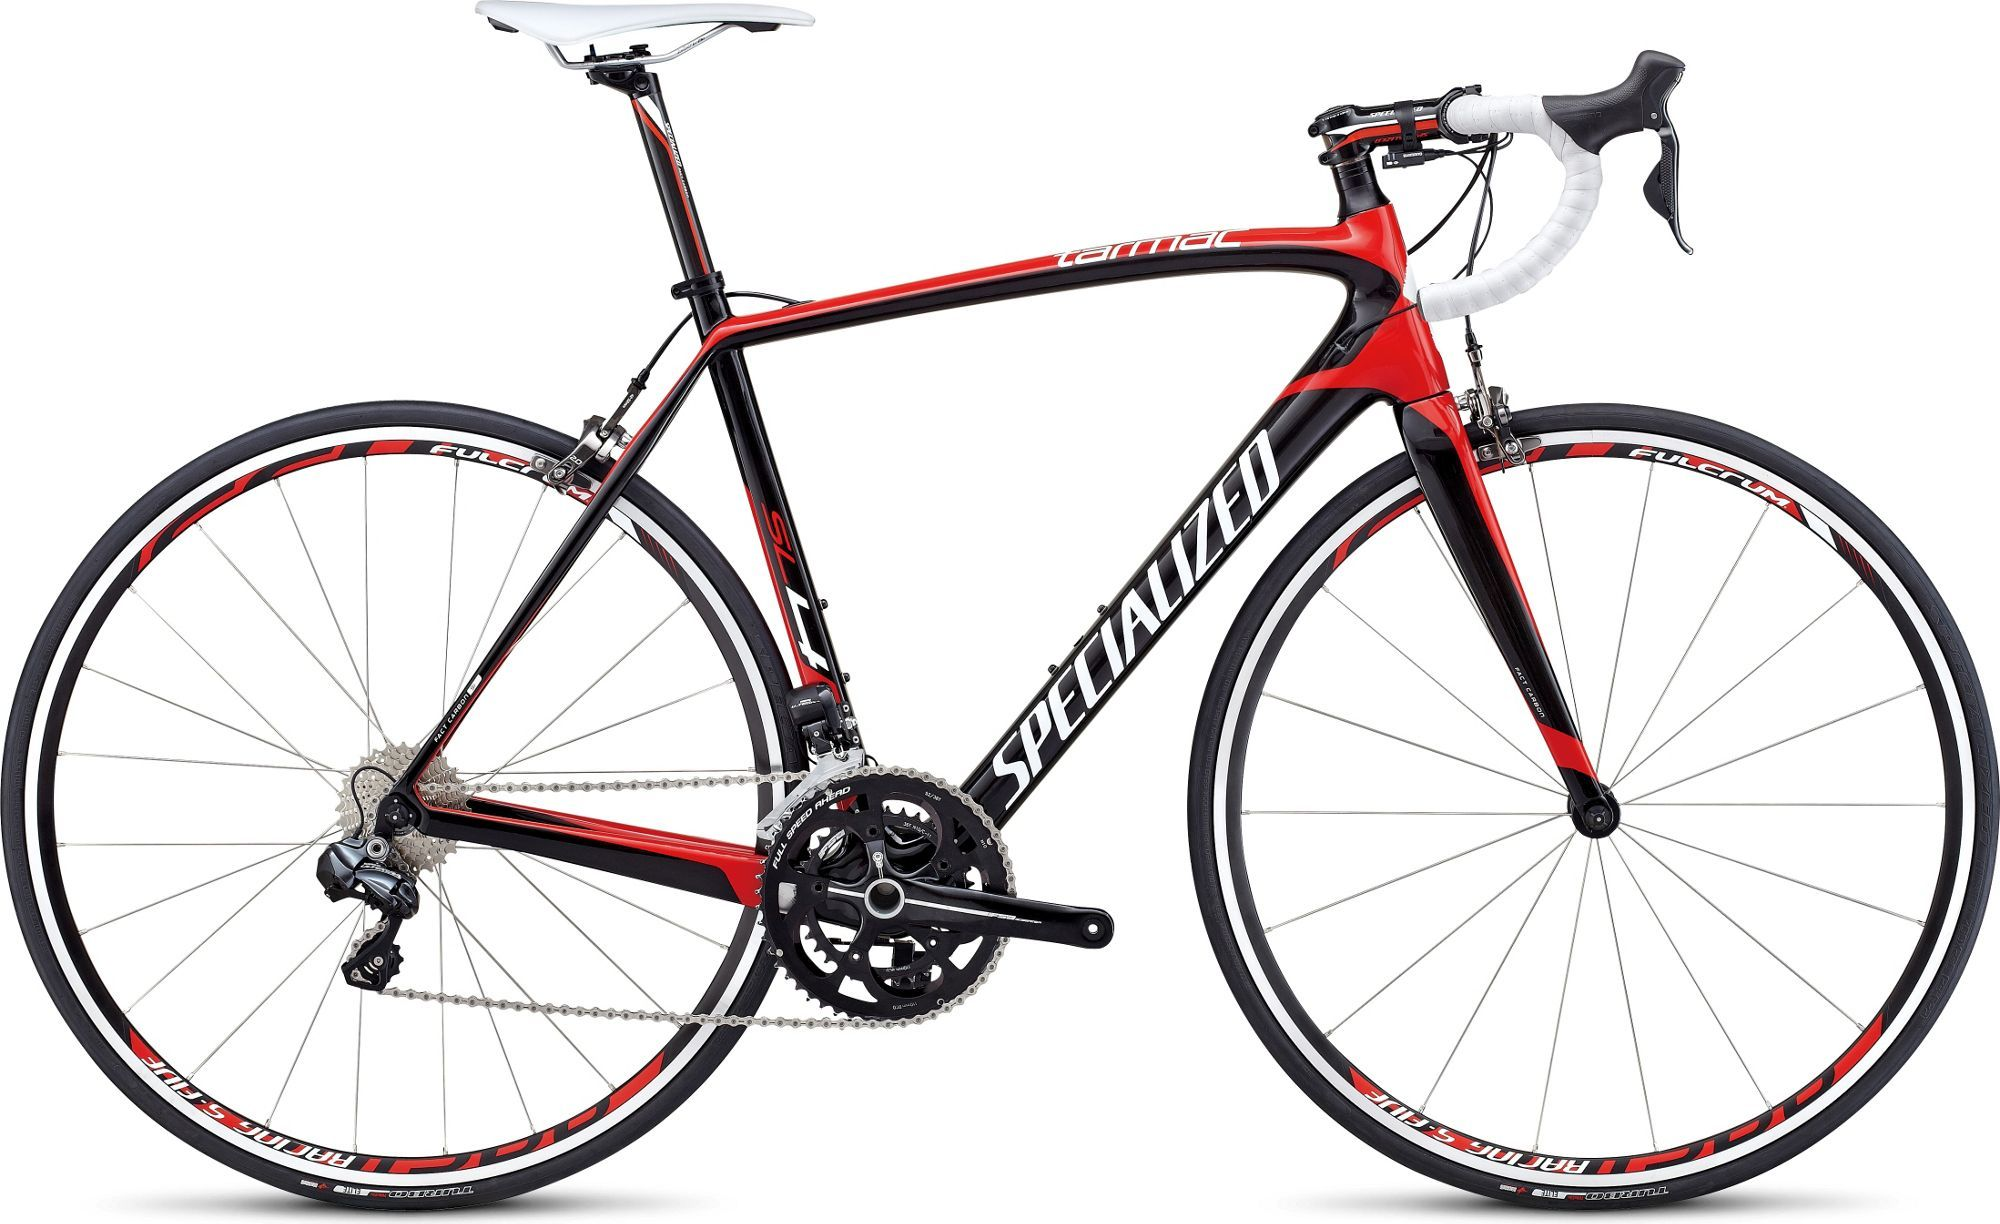 Specialized Tarmac Sl4 Comp Di2 2014 Review The Bike List